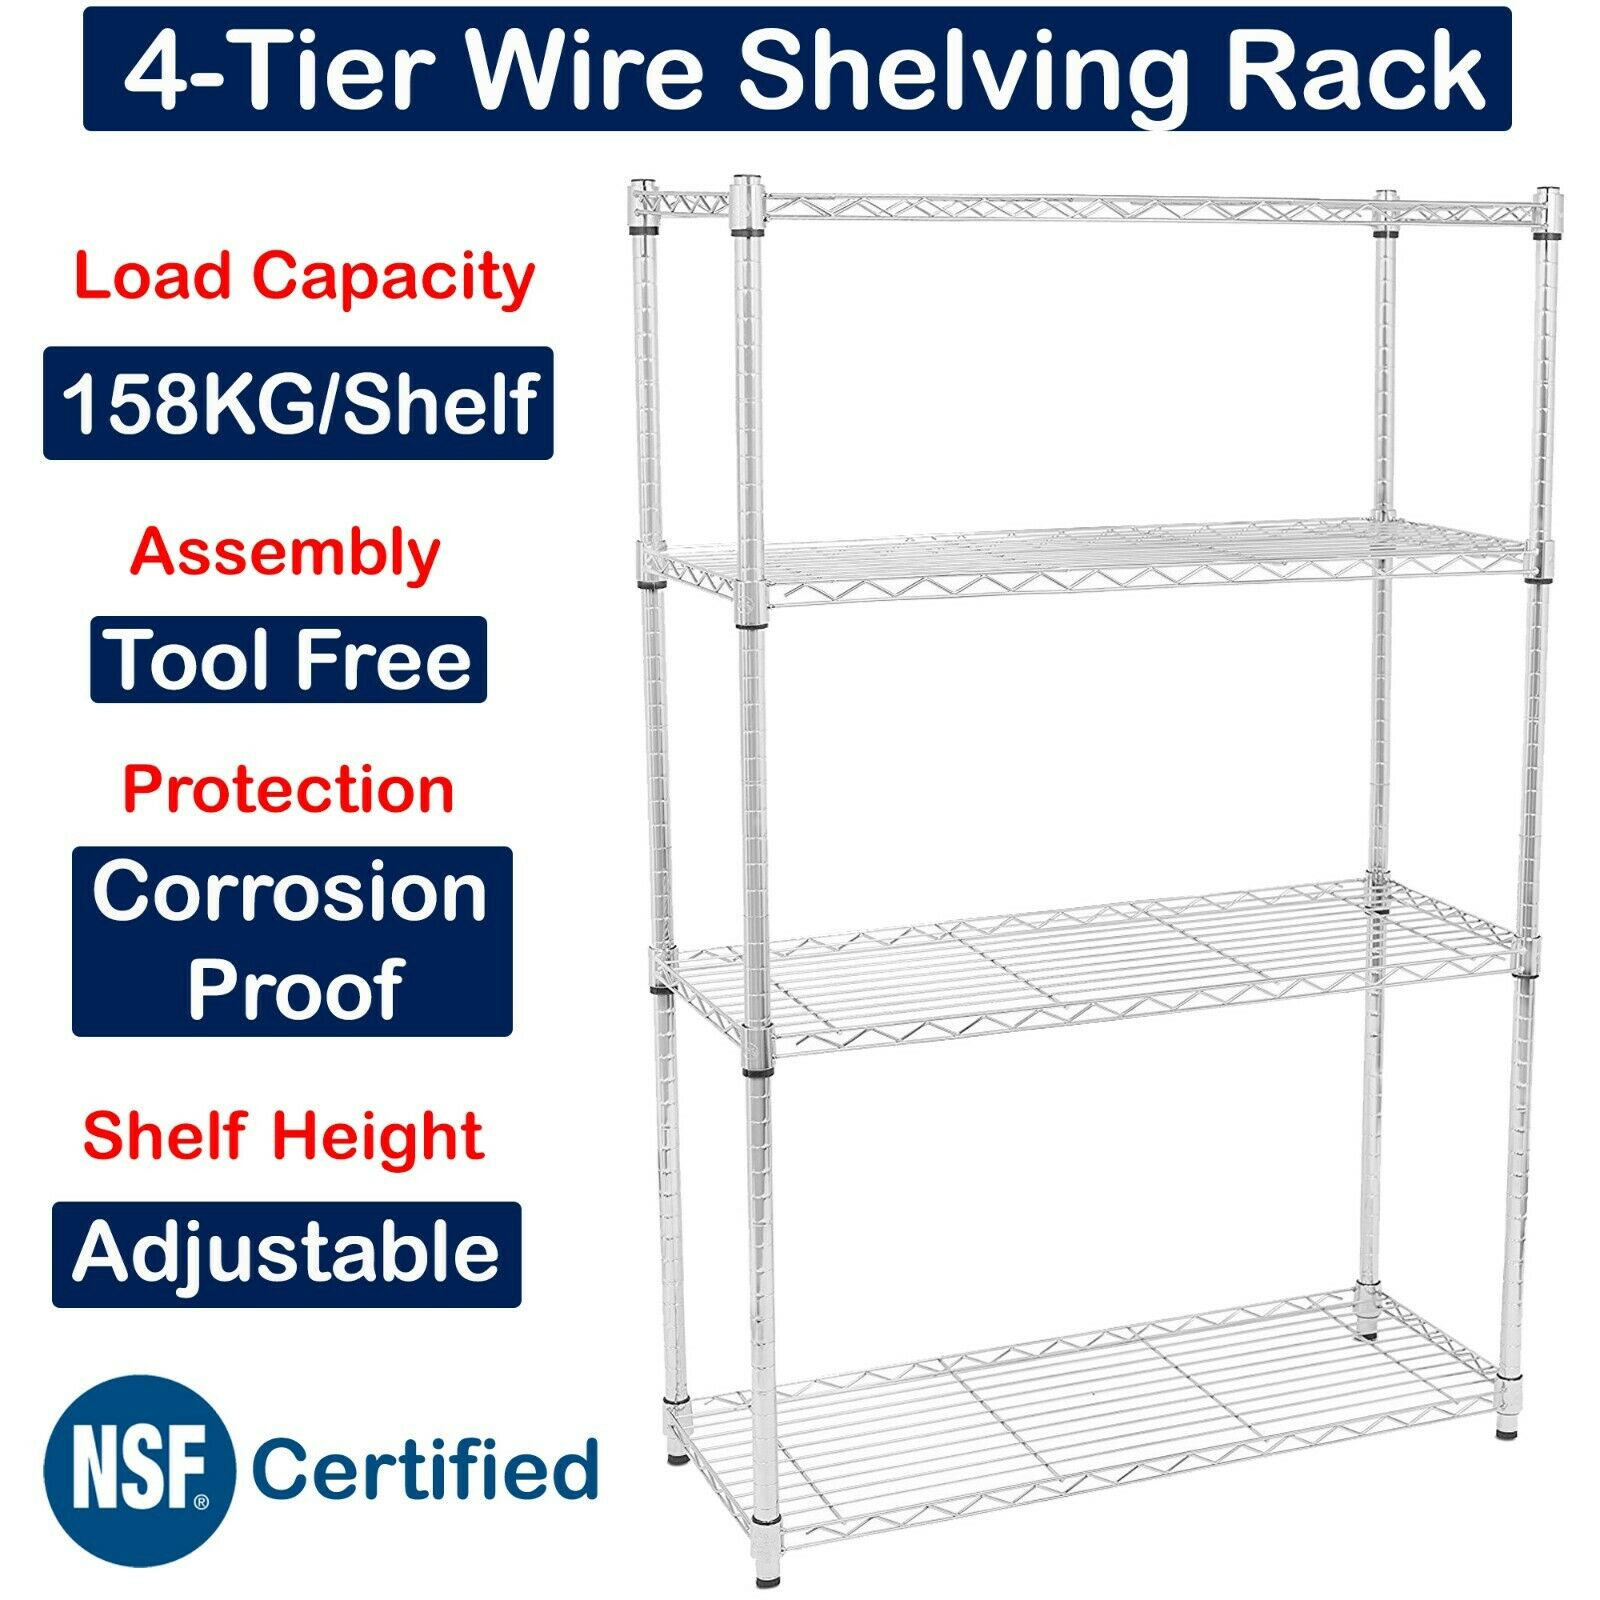 4-Tier Metal Rack Wire Shelving Kitchen Garage Shelf Storage Home Organizer